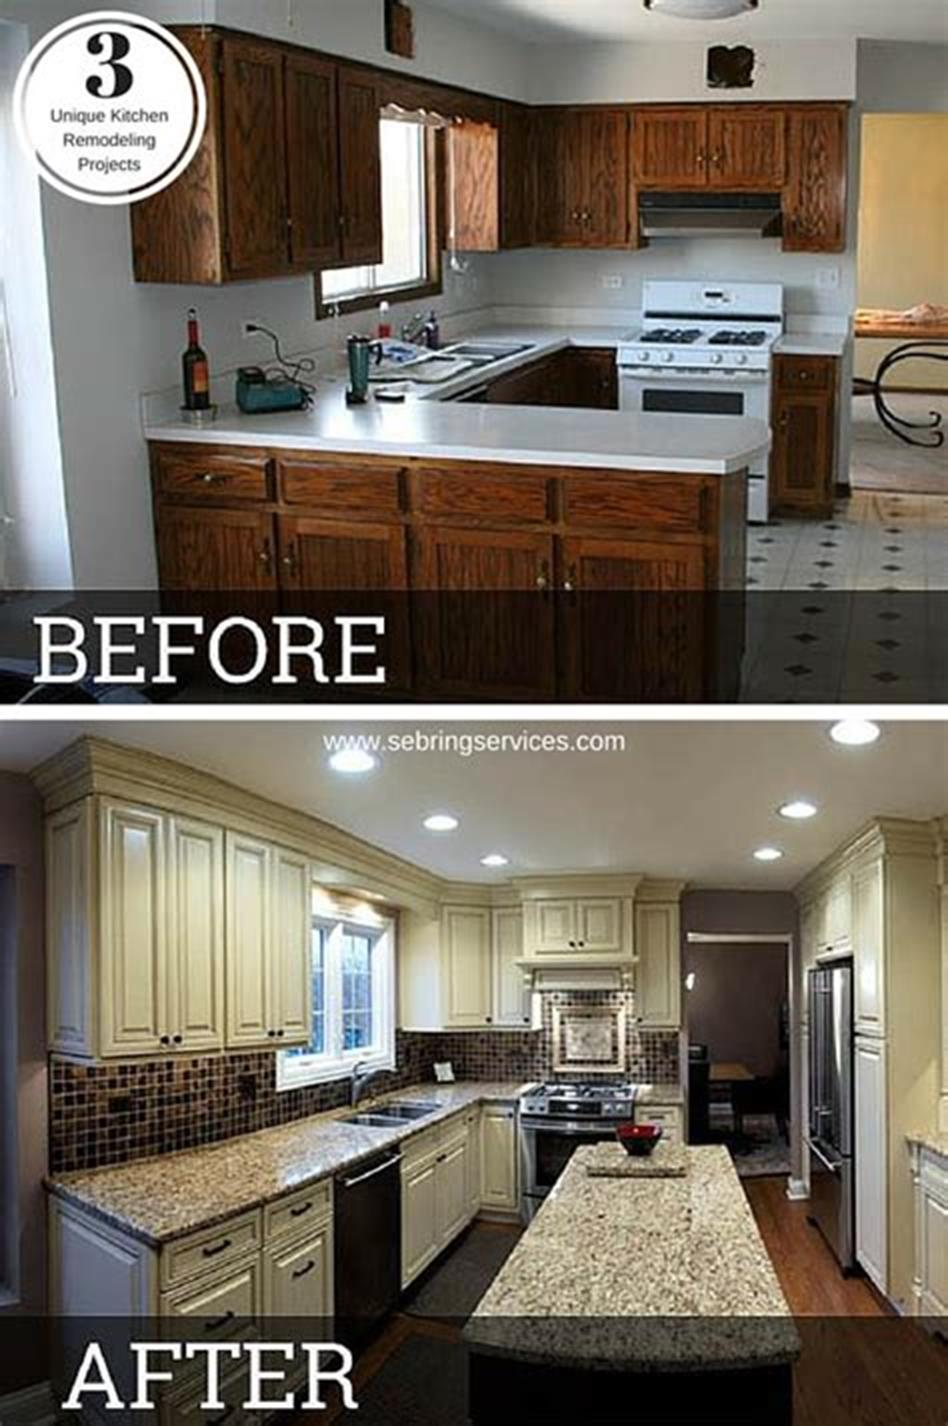 43 Extremely Creative Small Kitchen Design Ideas: 43 Amazing Kitchen Remodeling Ideas For Small Kitchens